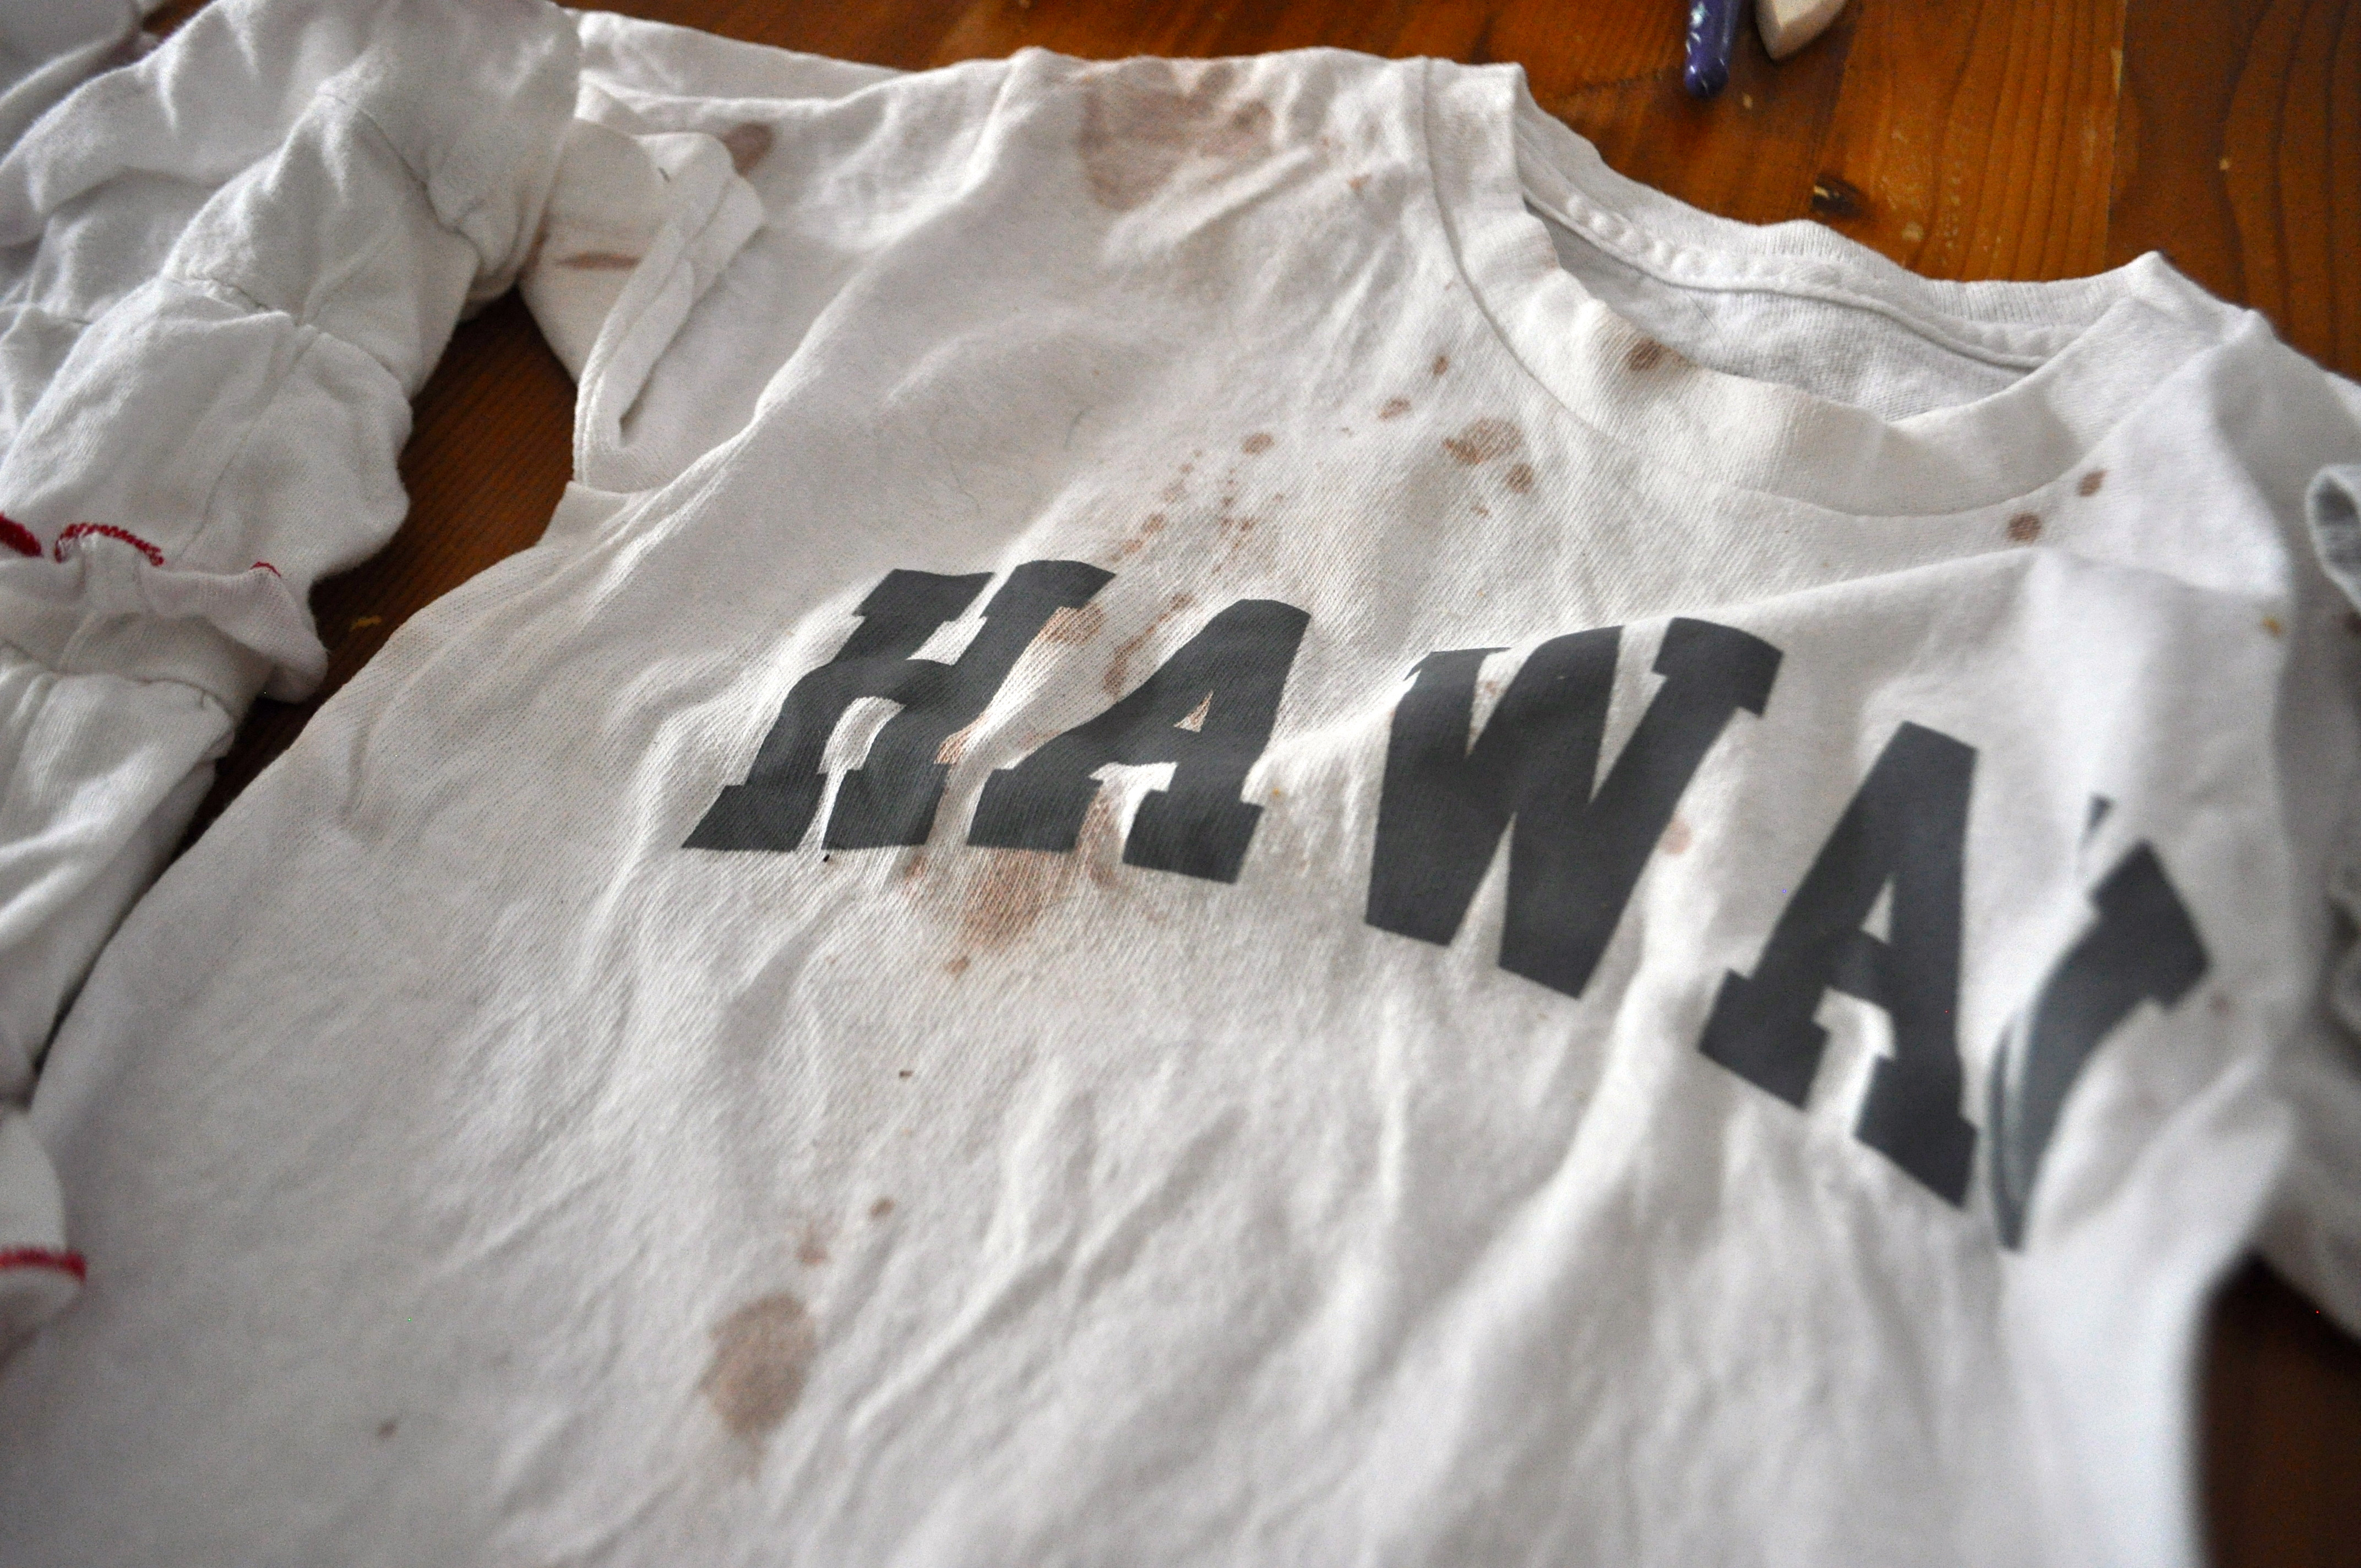 Tiedying with Acrylic Paints Stains clothes not skin